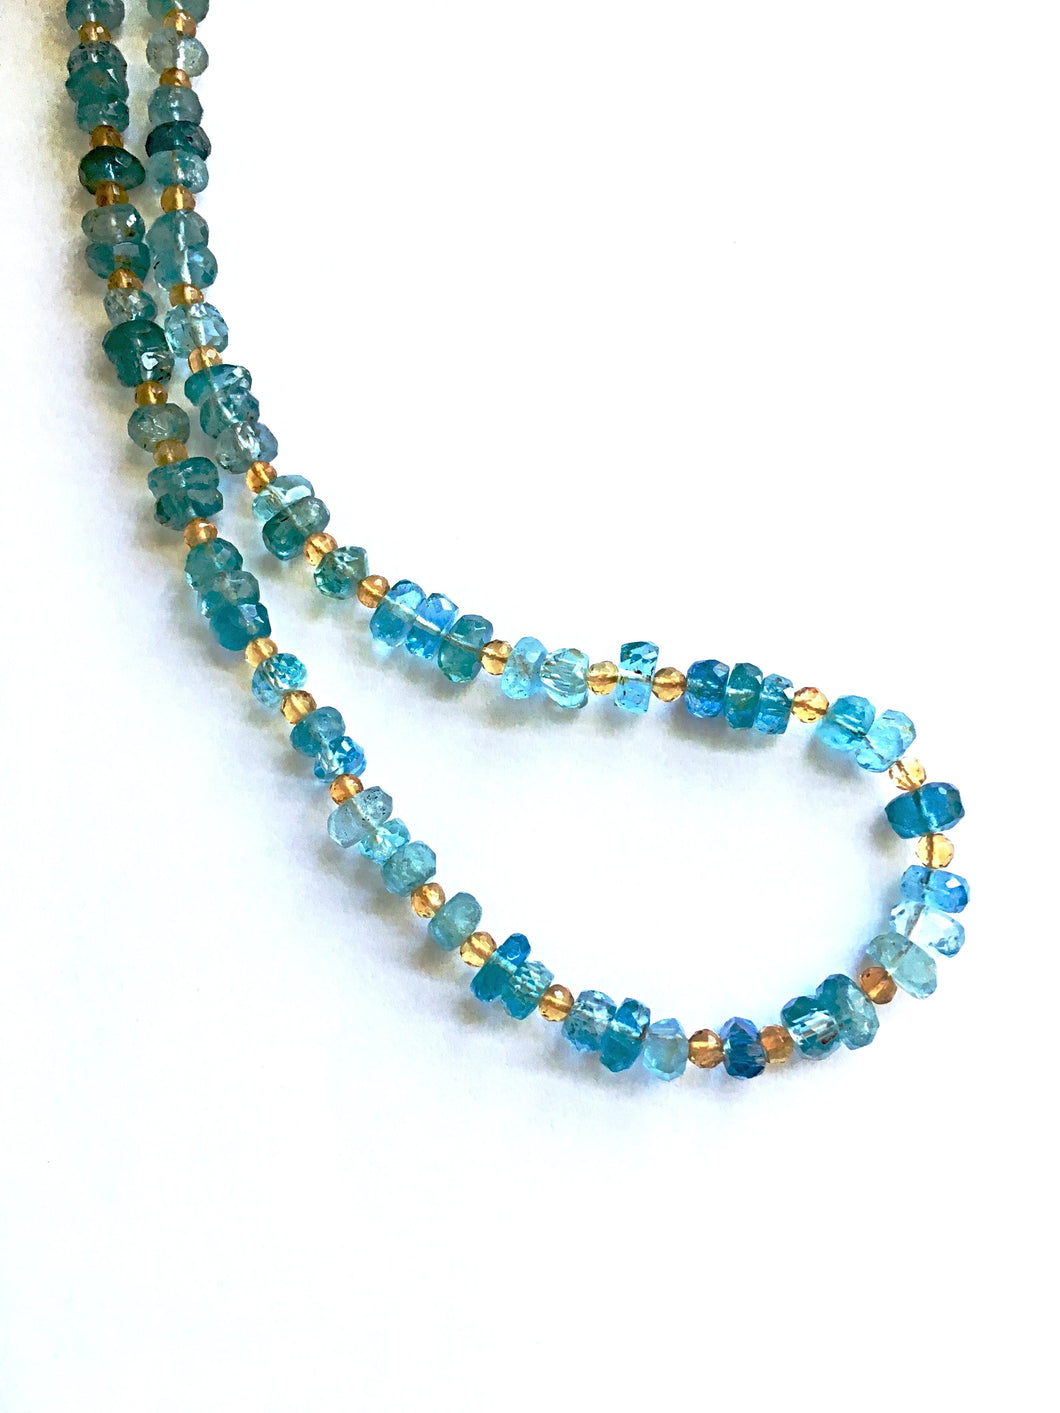 Simple Elegance: Hand Cut Aquamarine and Citrine Necklace